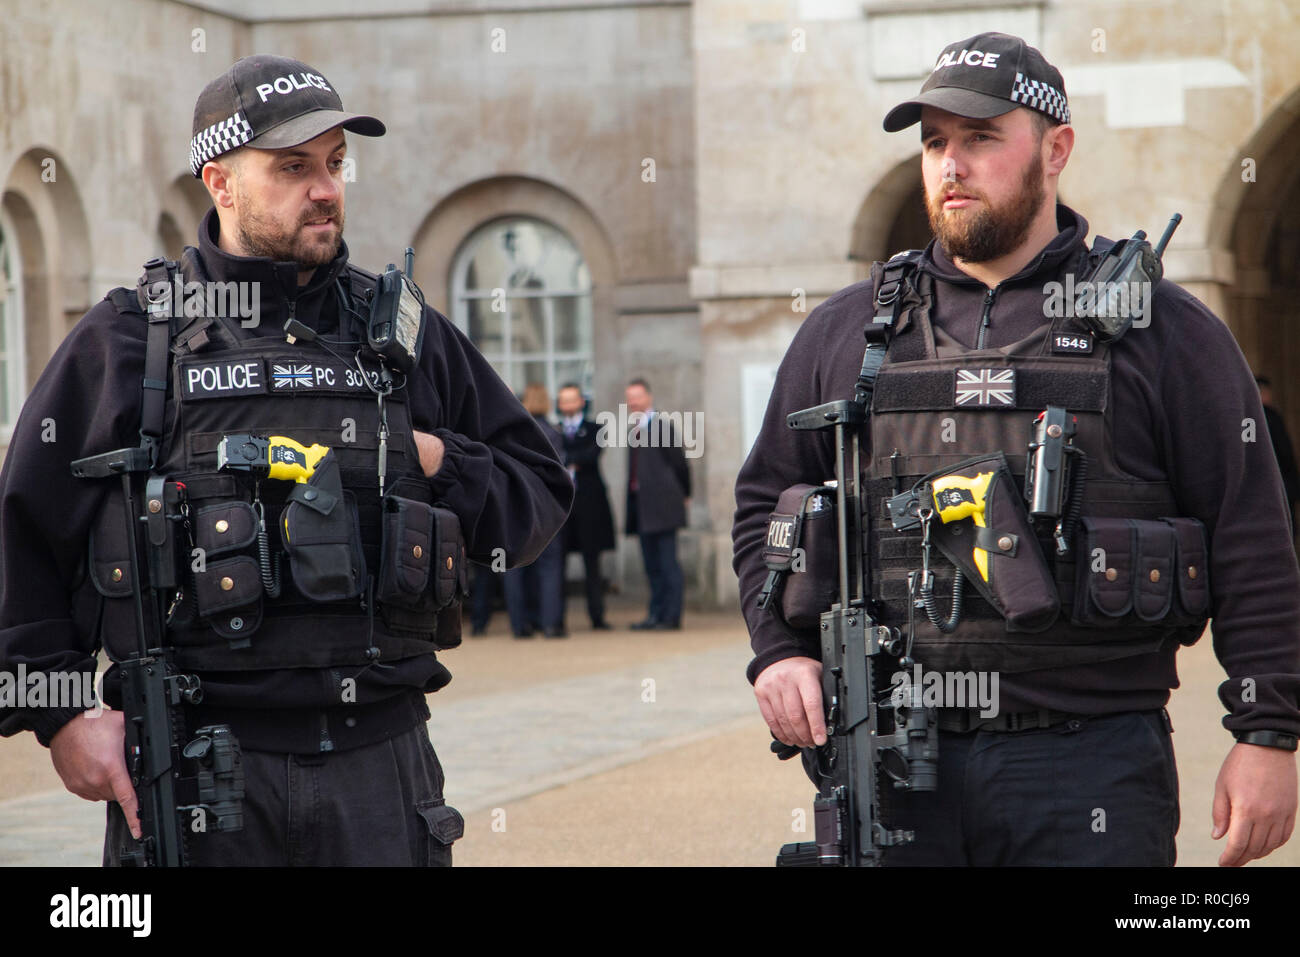 Heavily armed British police - Stock Image